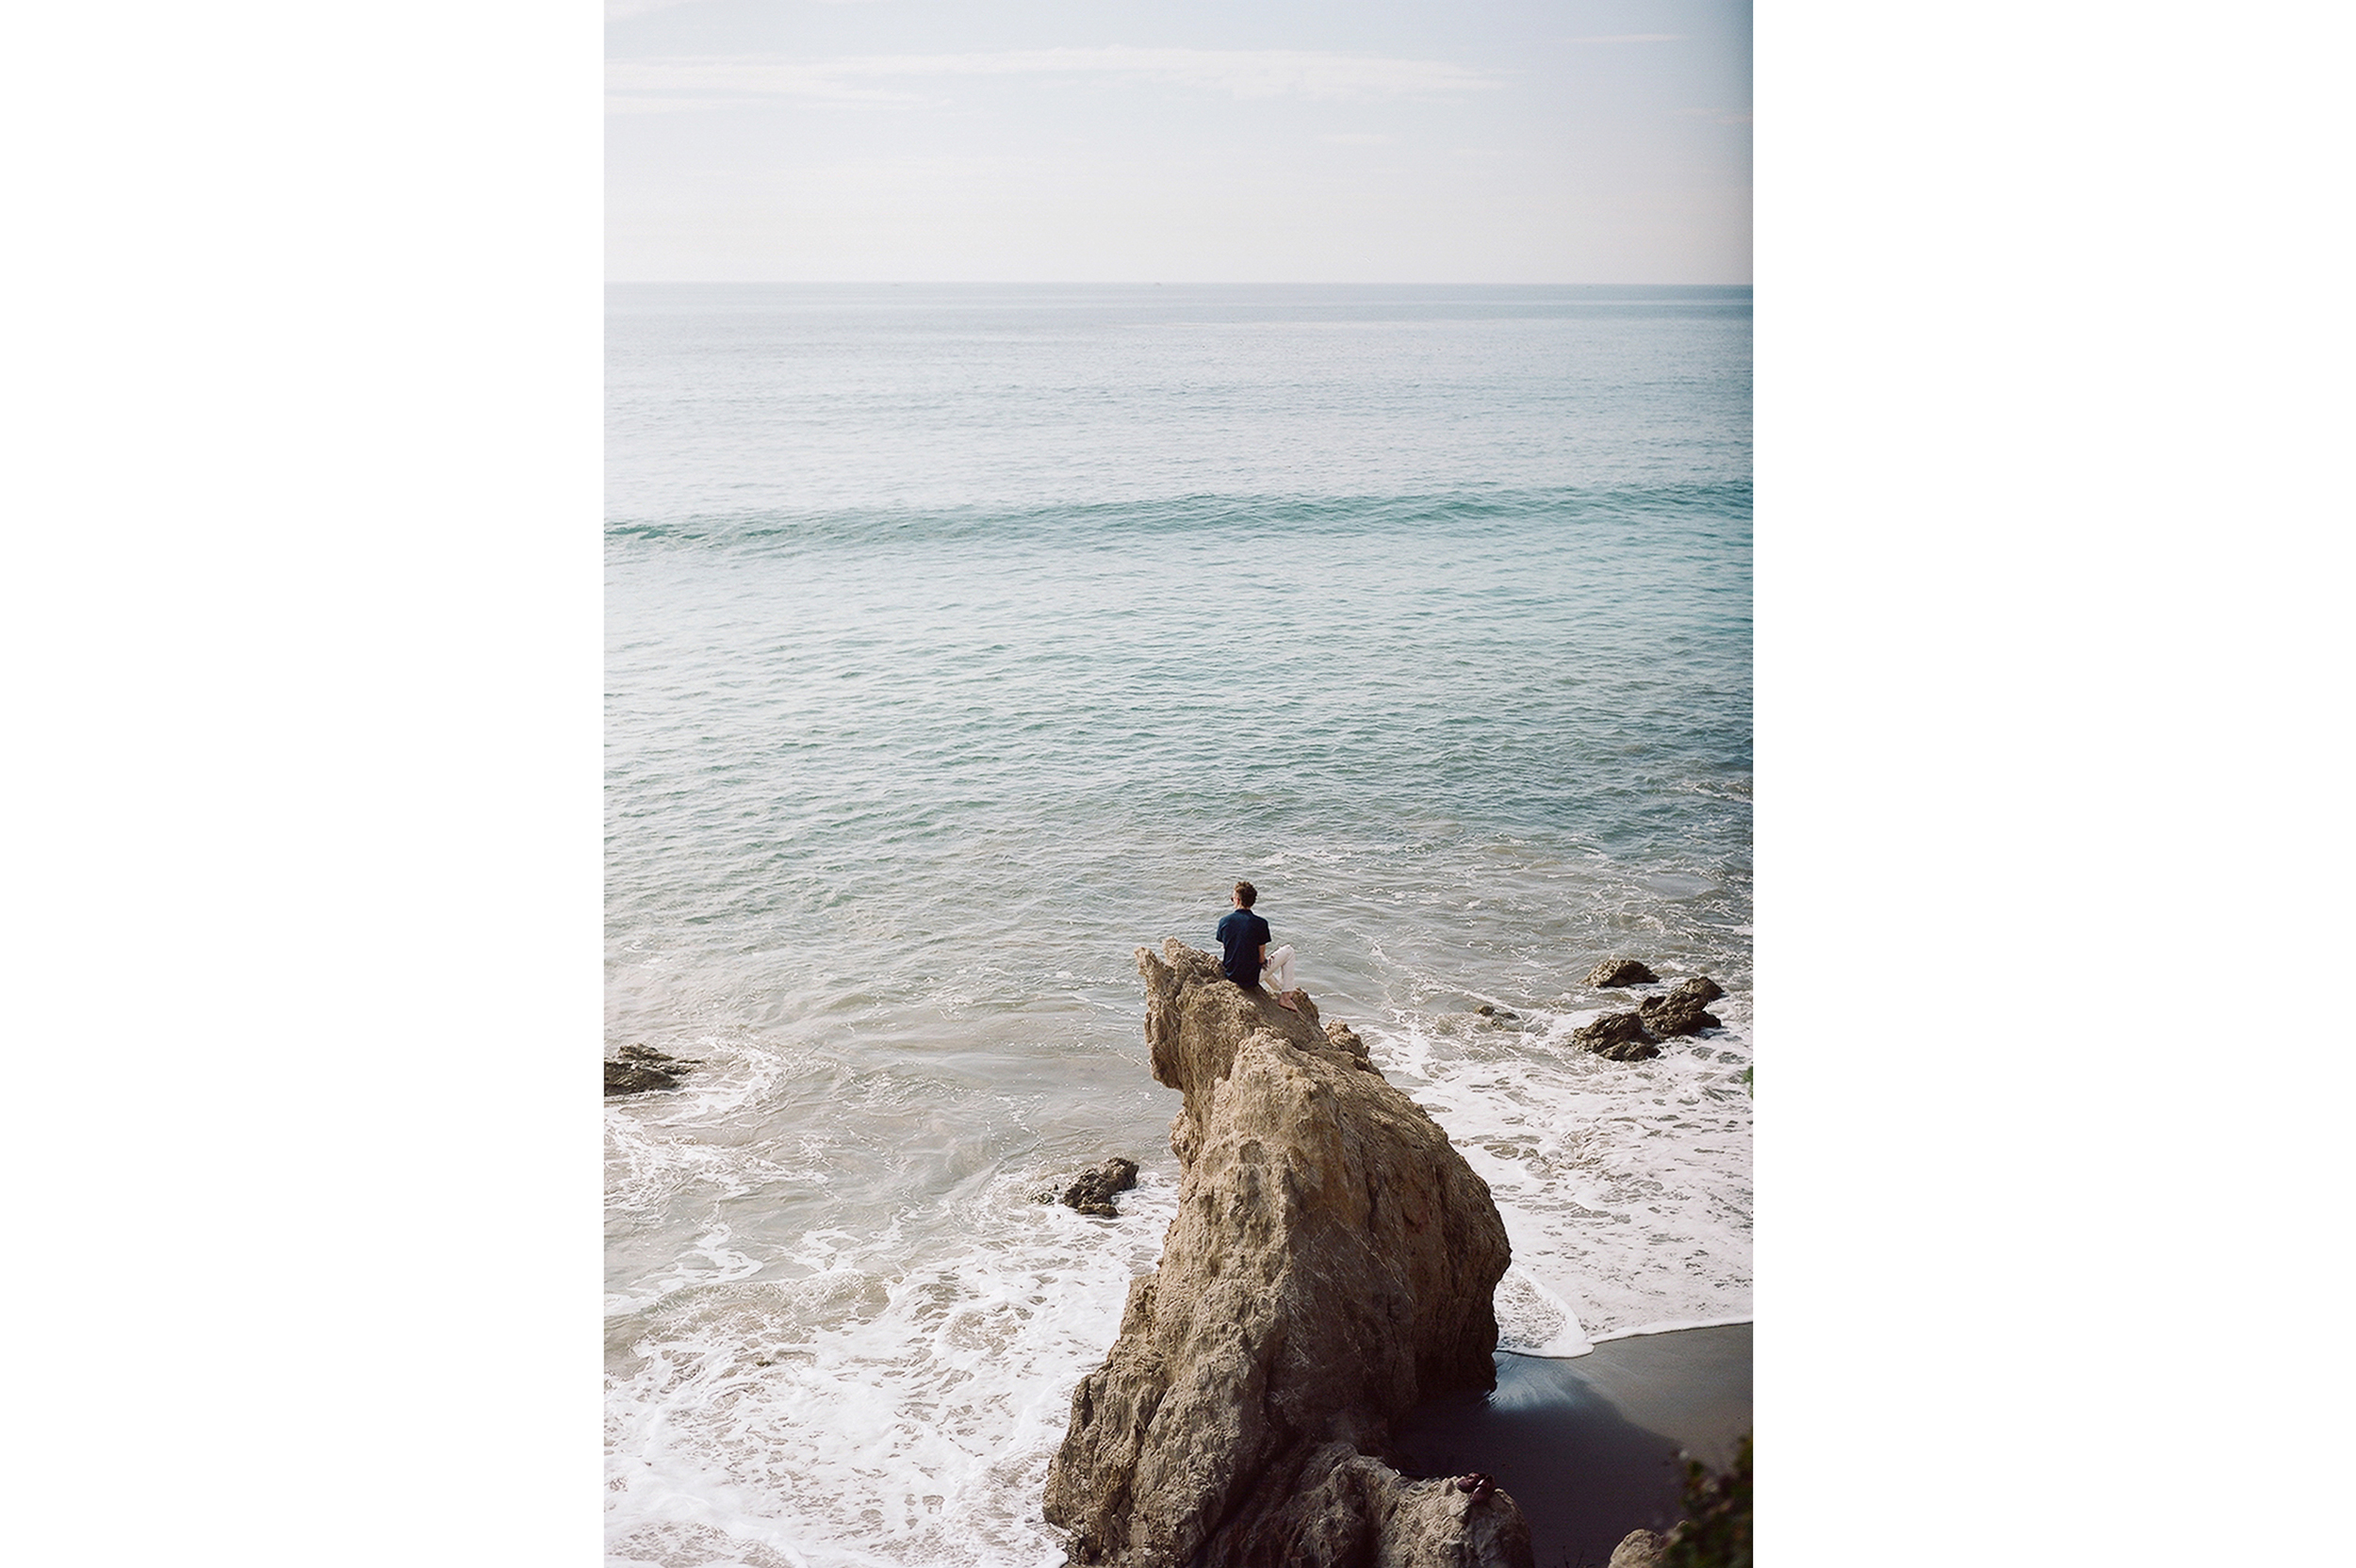 Scott at El Matador Beach, California, 2015